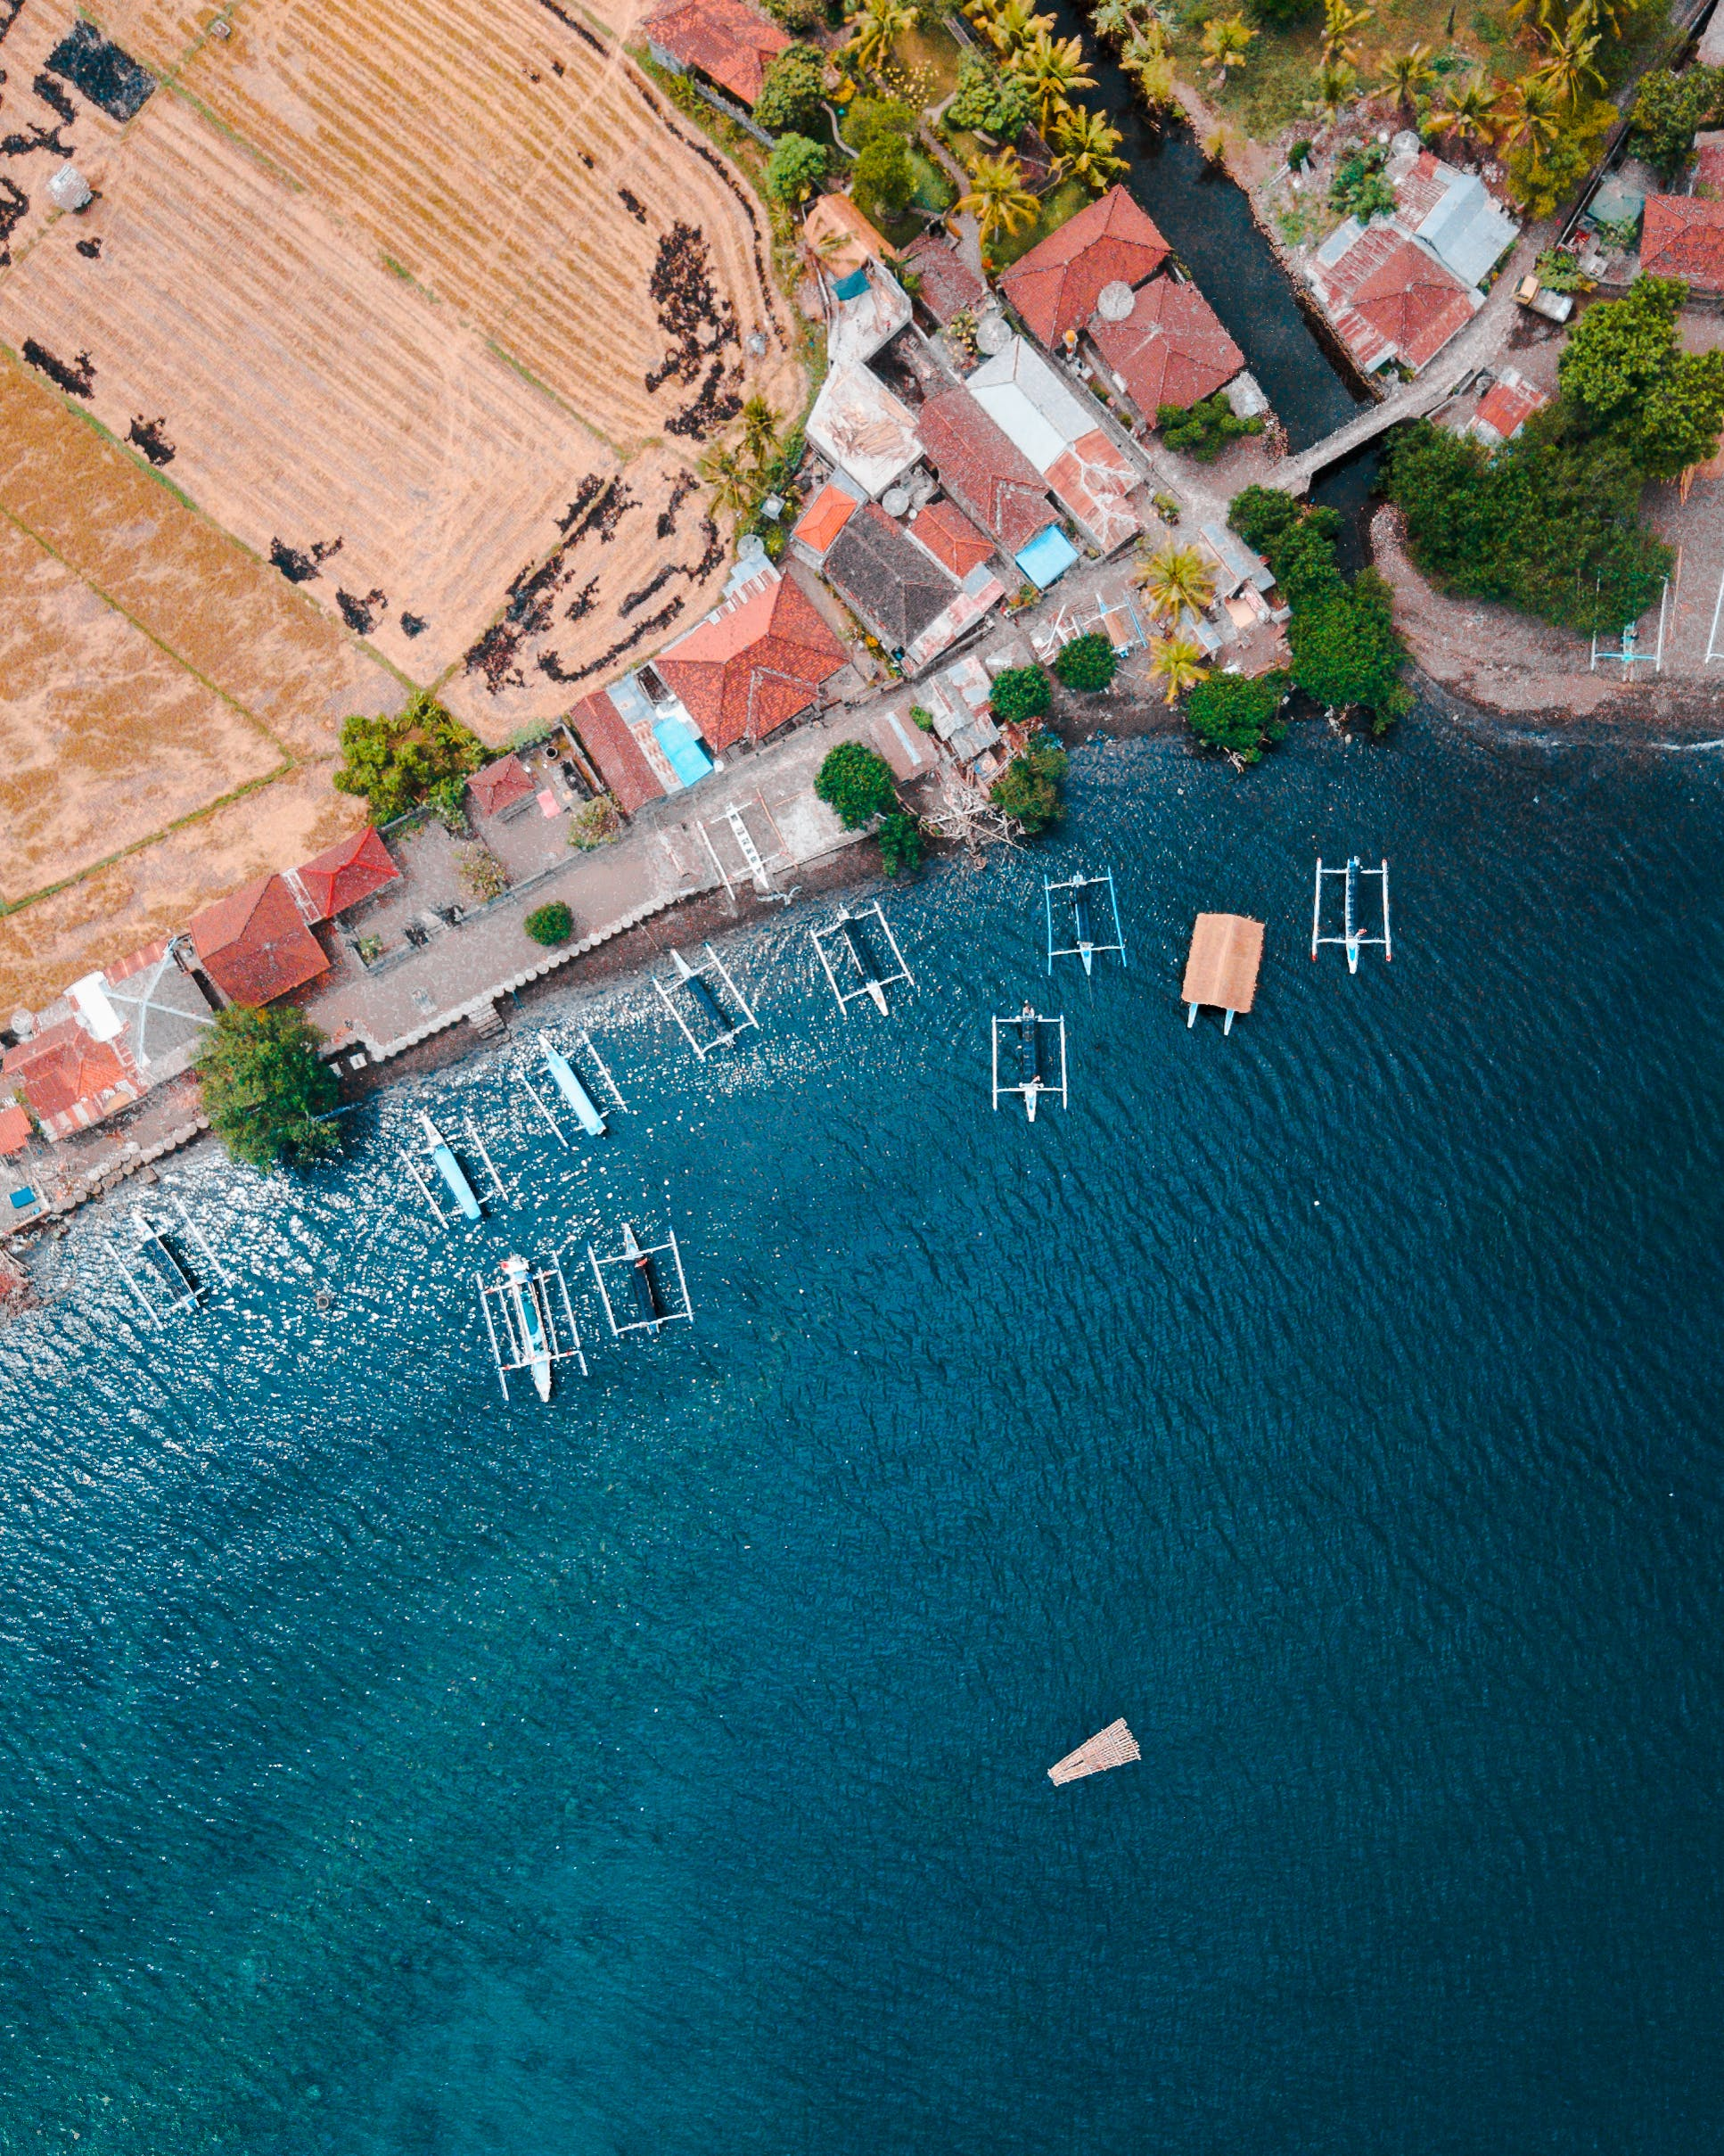 Aerial Photography of Houses Near Body of Water With Boat